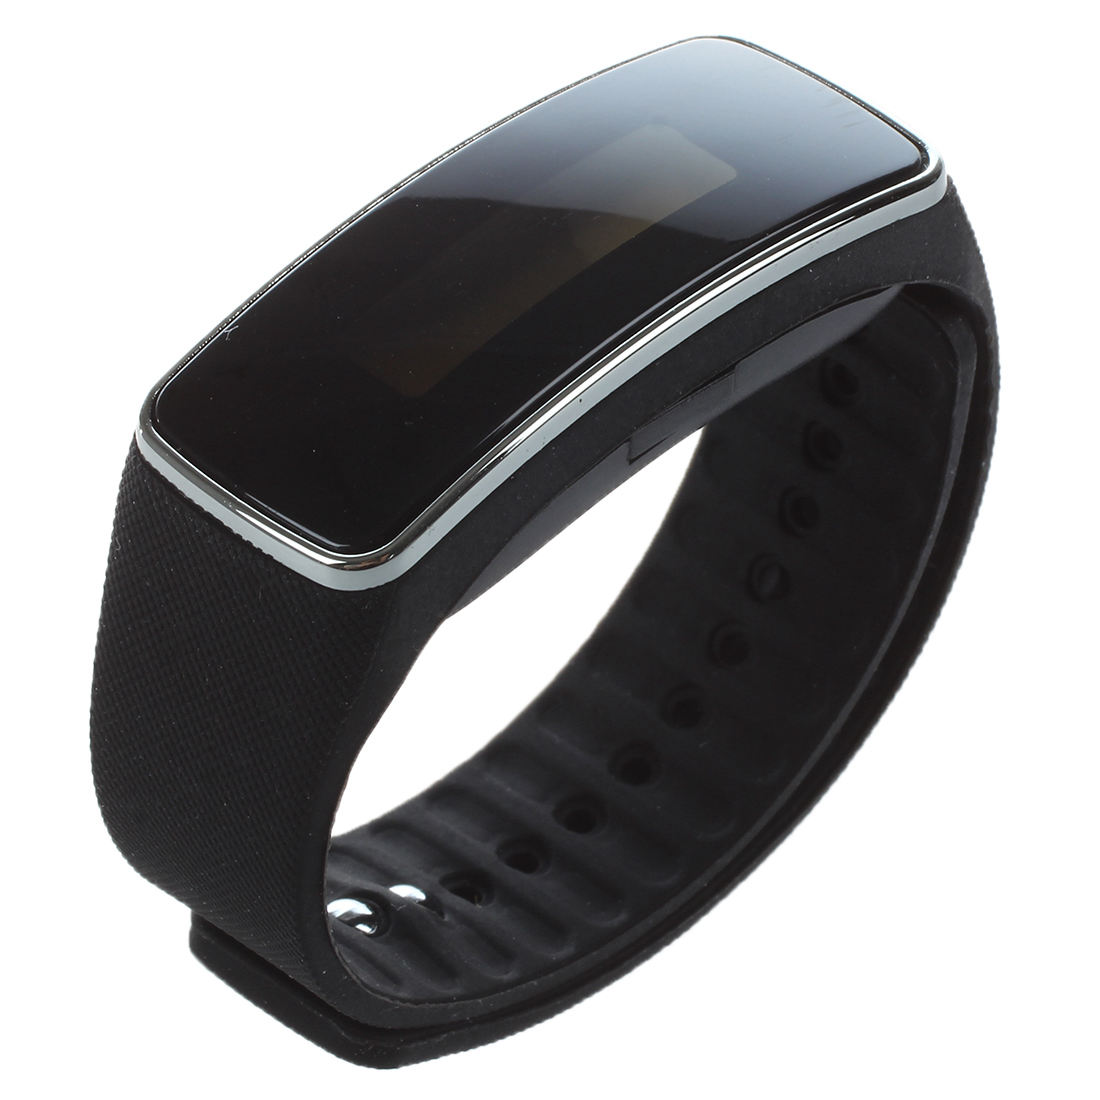 V5 Bluetooth Smart Watch Pedometer Step Walking Distance Calorie Counter Sport Tracker